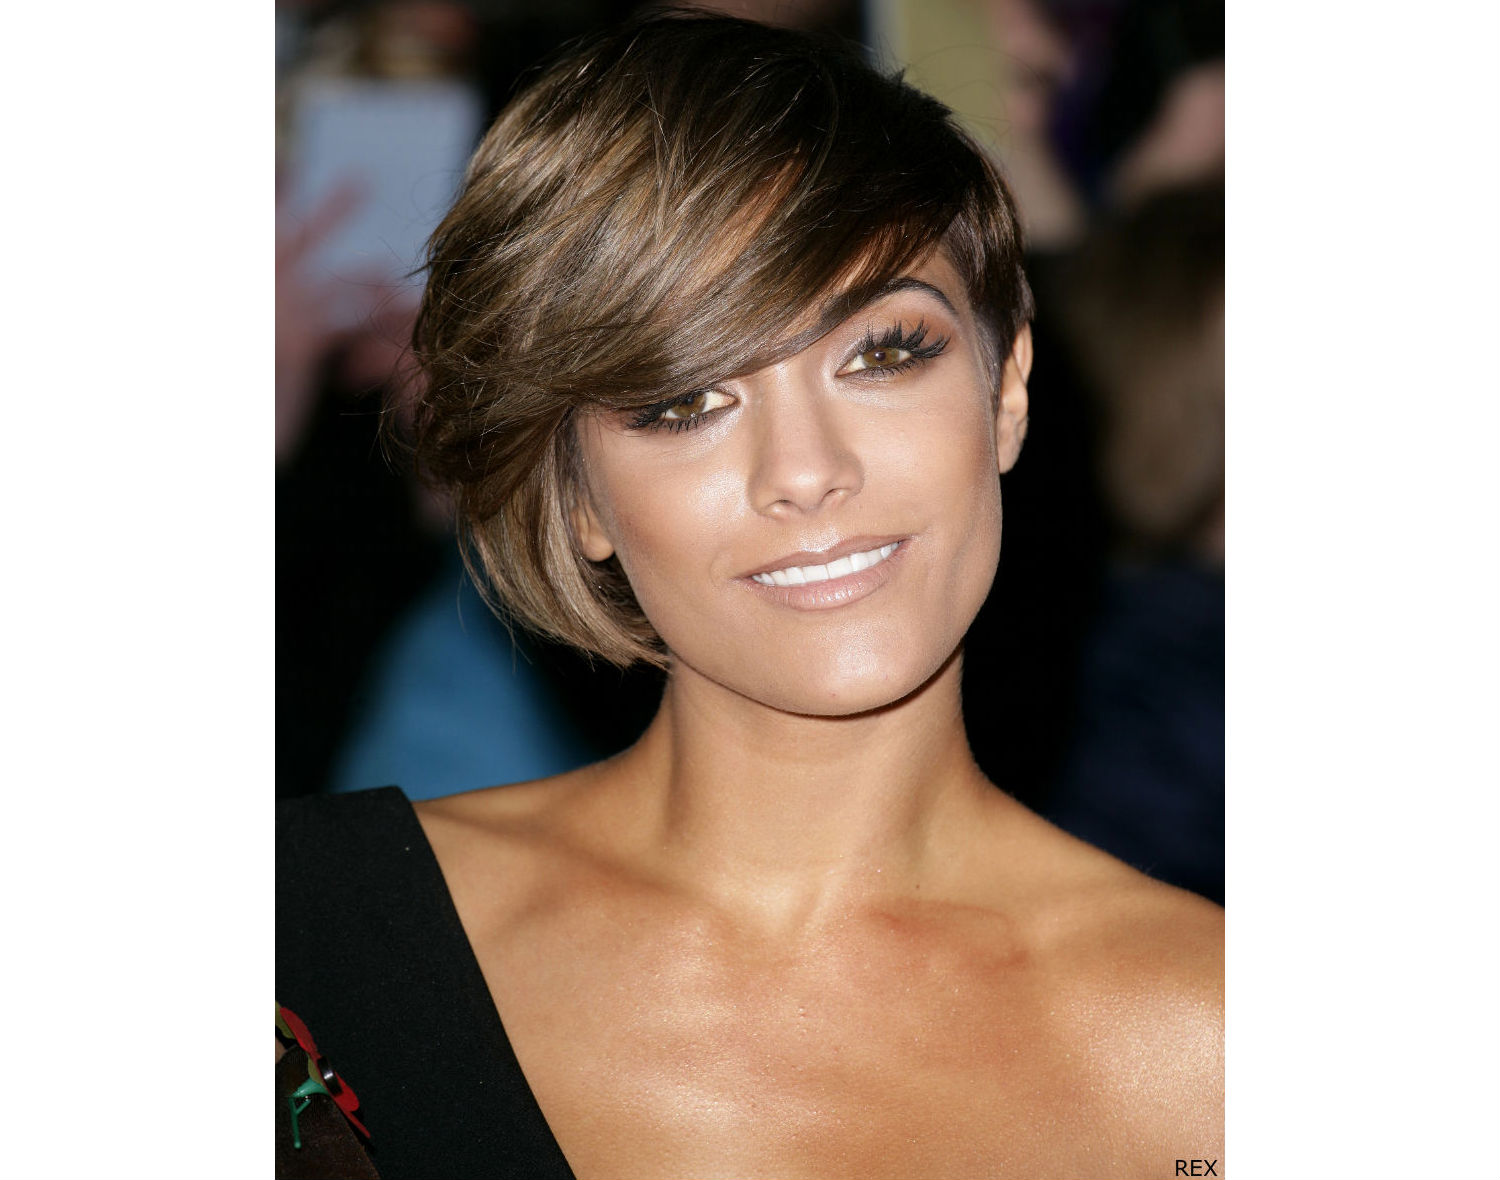 L Hairstyle: Chic Short Curly Bob Hairstyles For Women